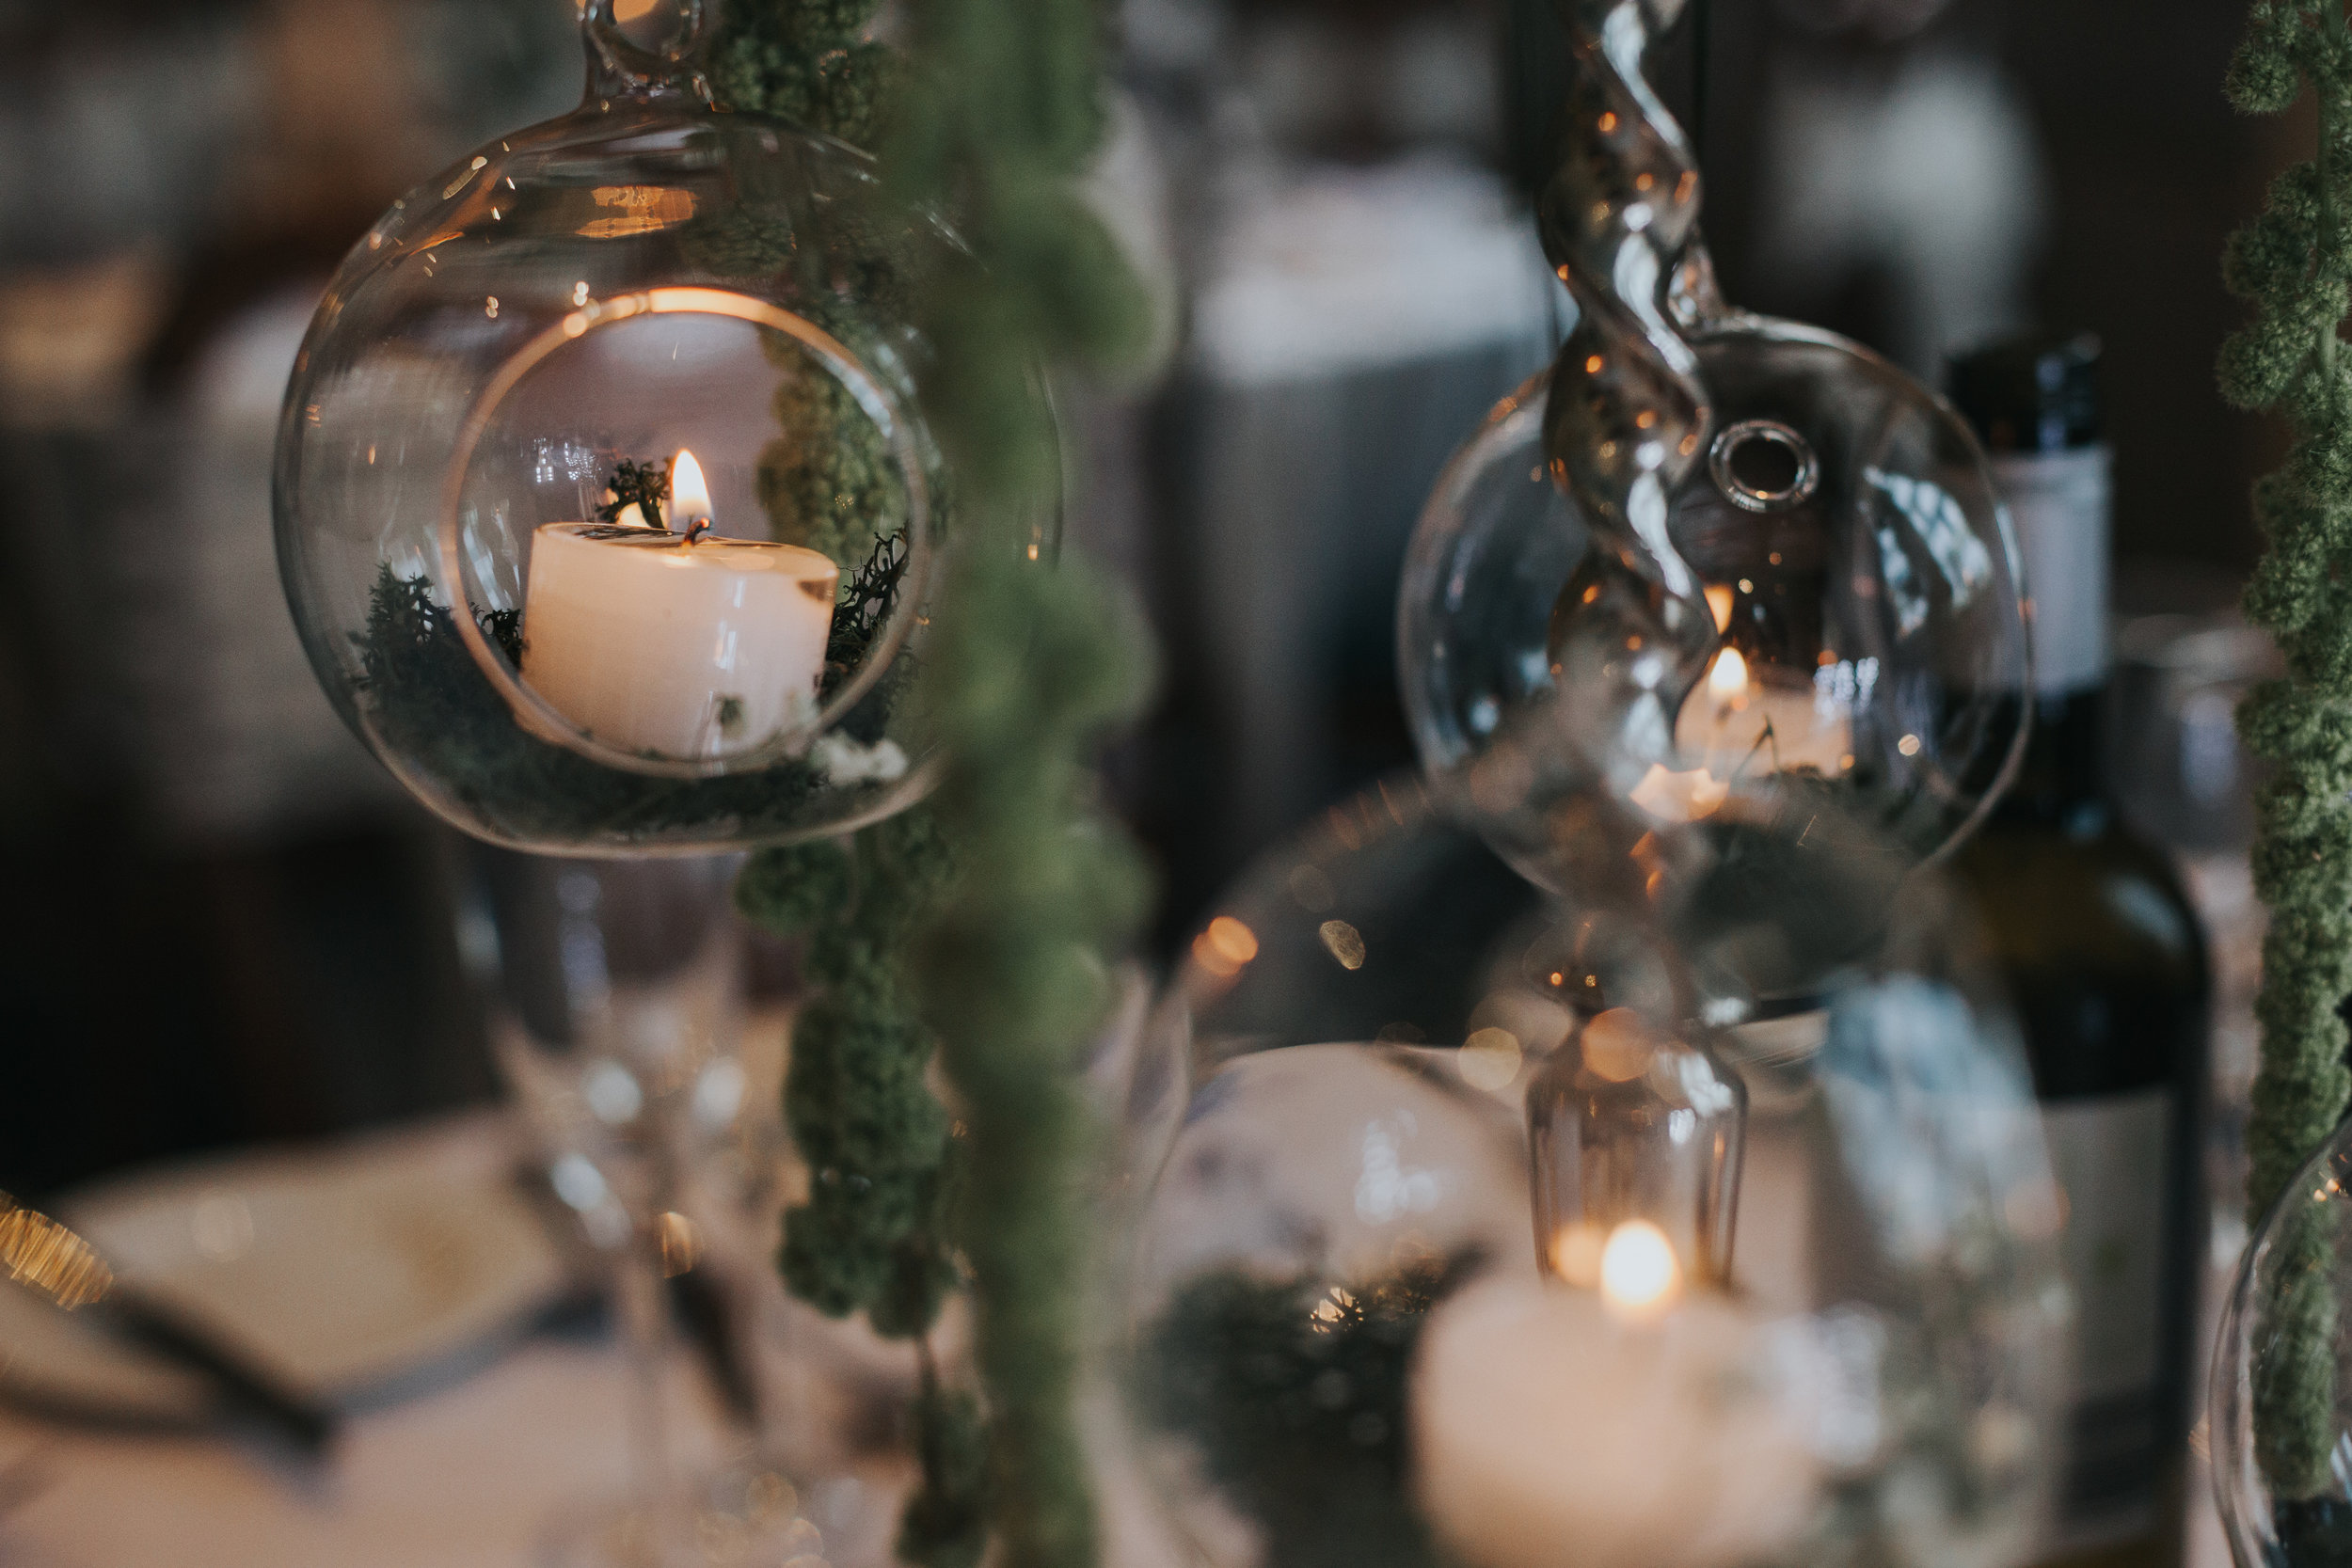 Candles in glass domes.